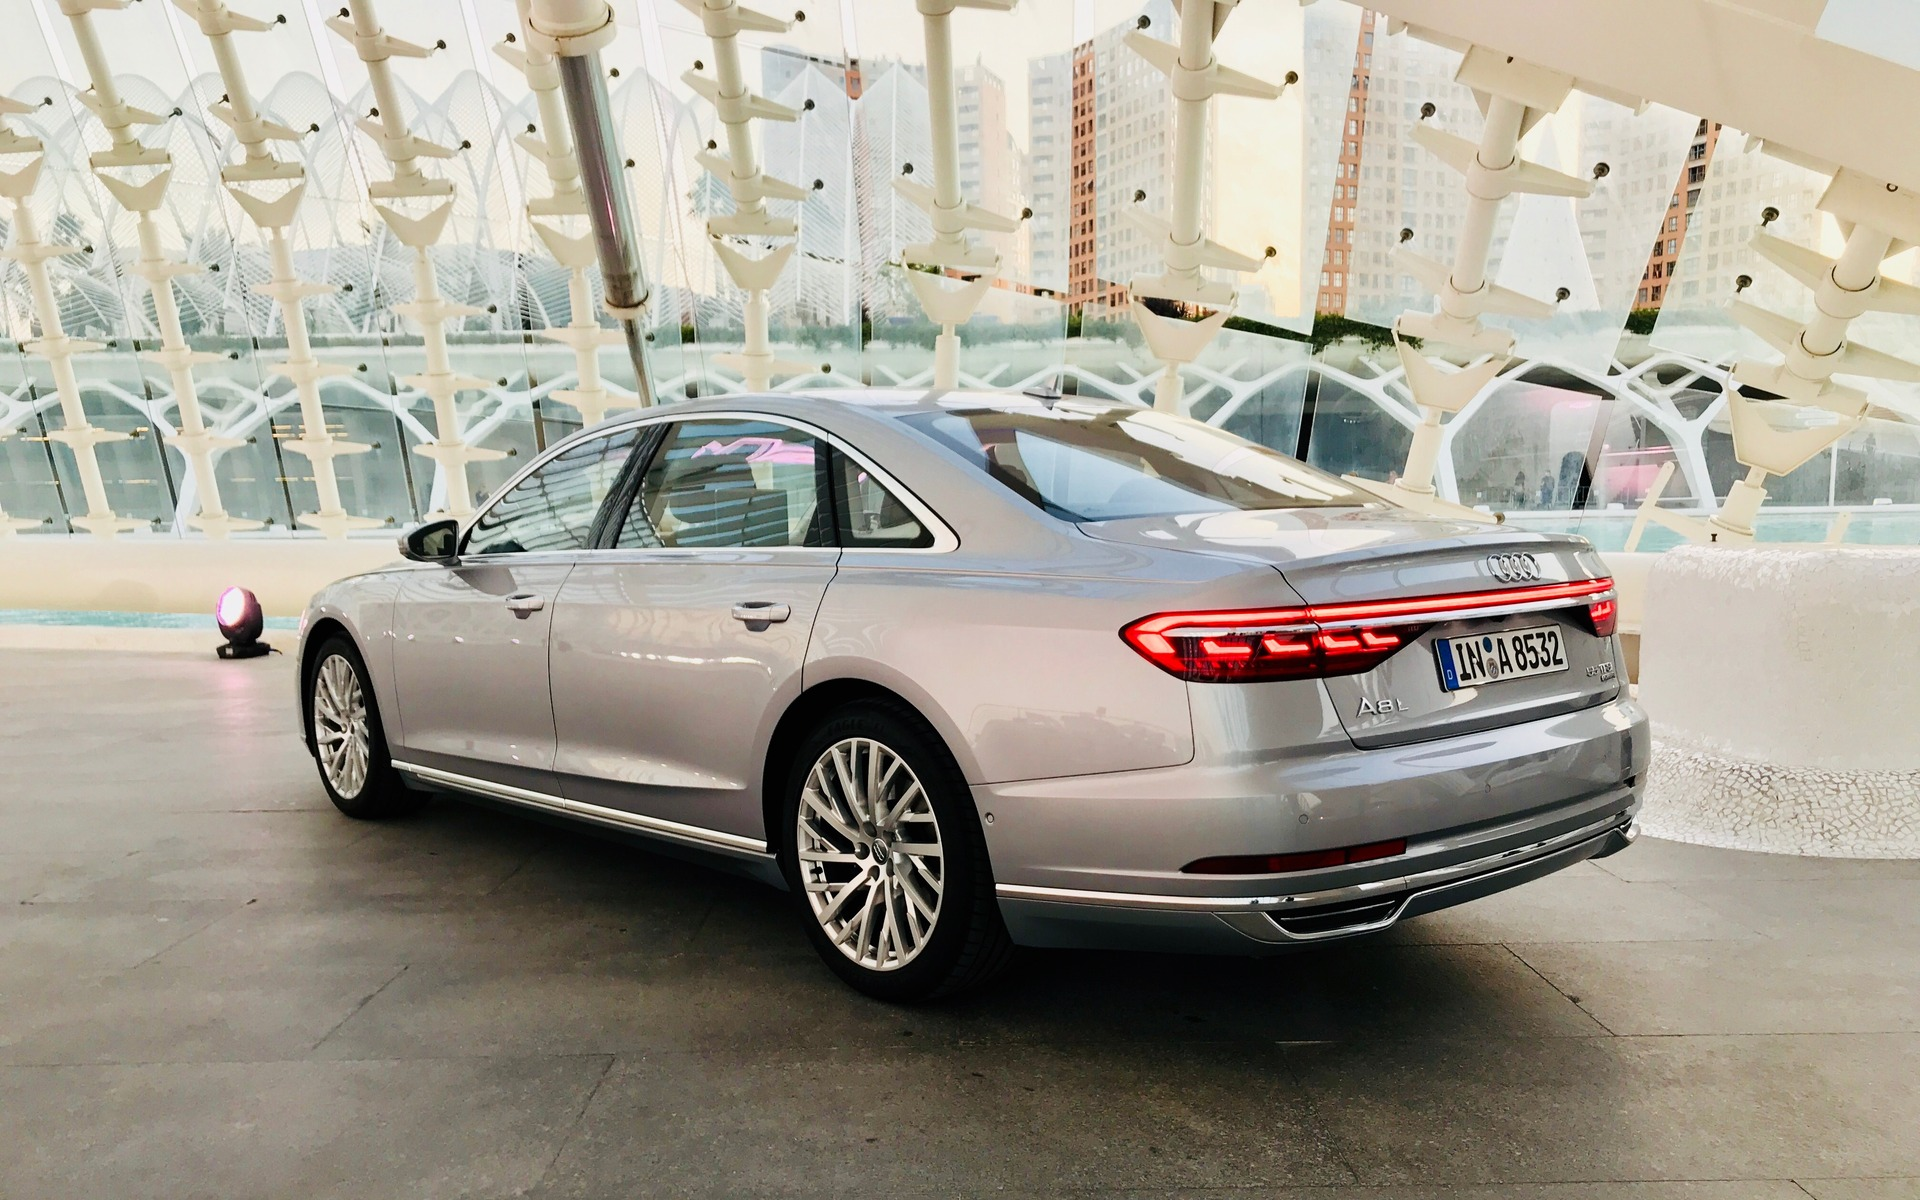 2019 Audi A8 The Uber Techno Flagship Sedan 25 36